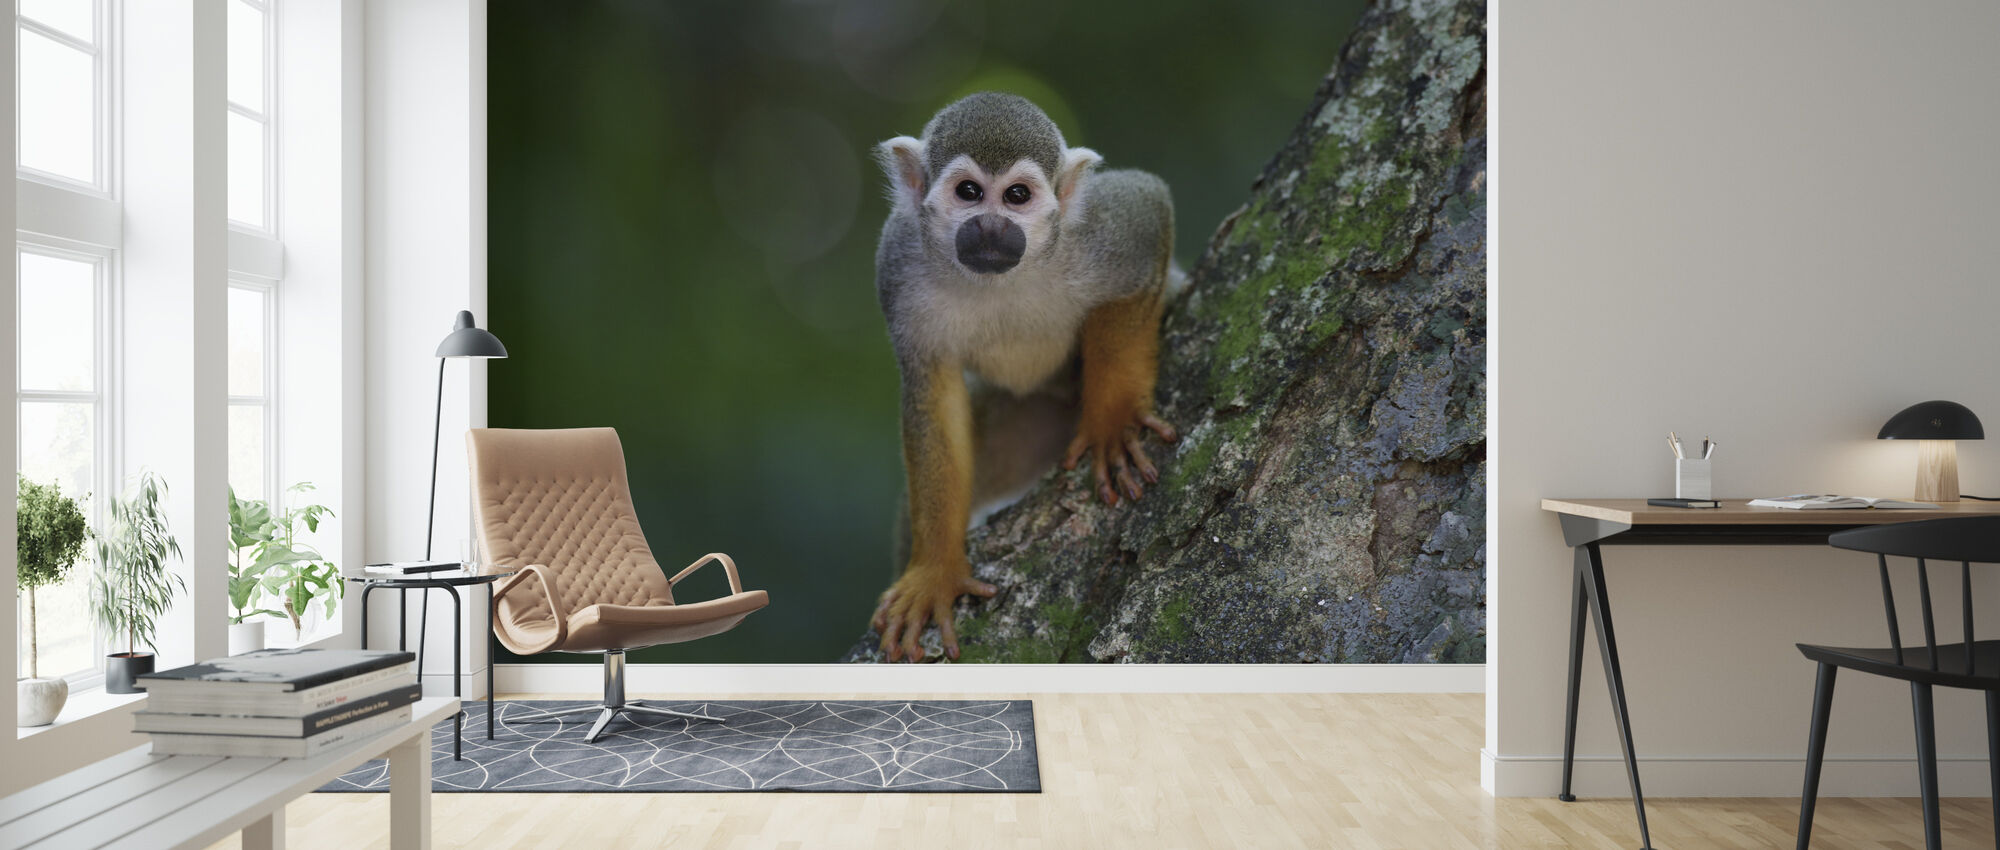 Scented Monkey - Wallpaper - Living Room